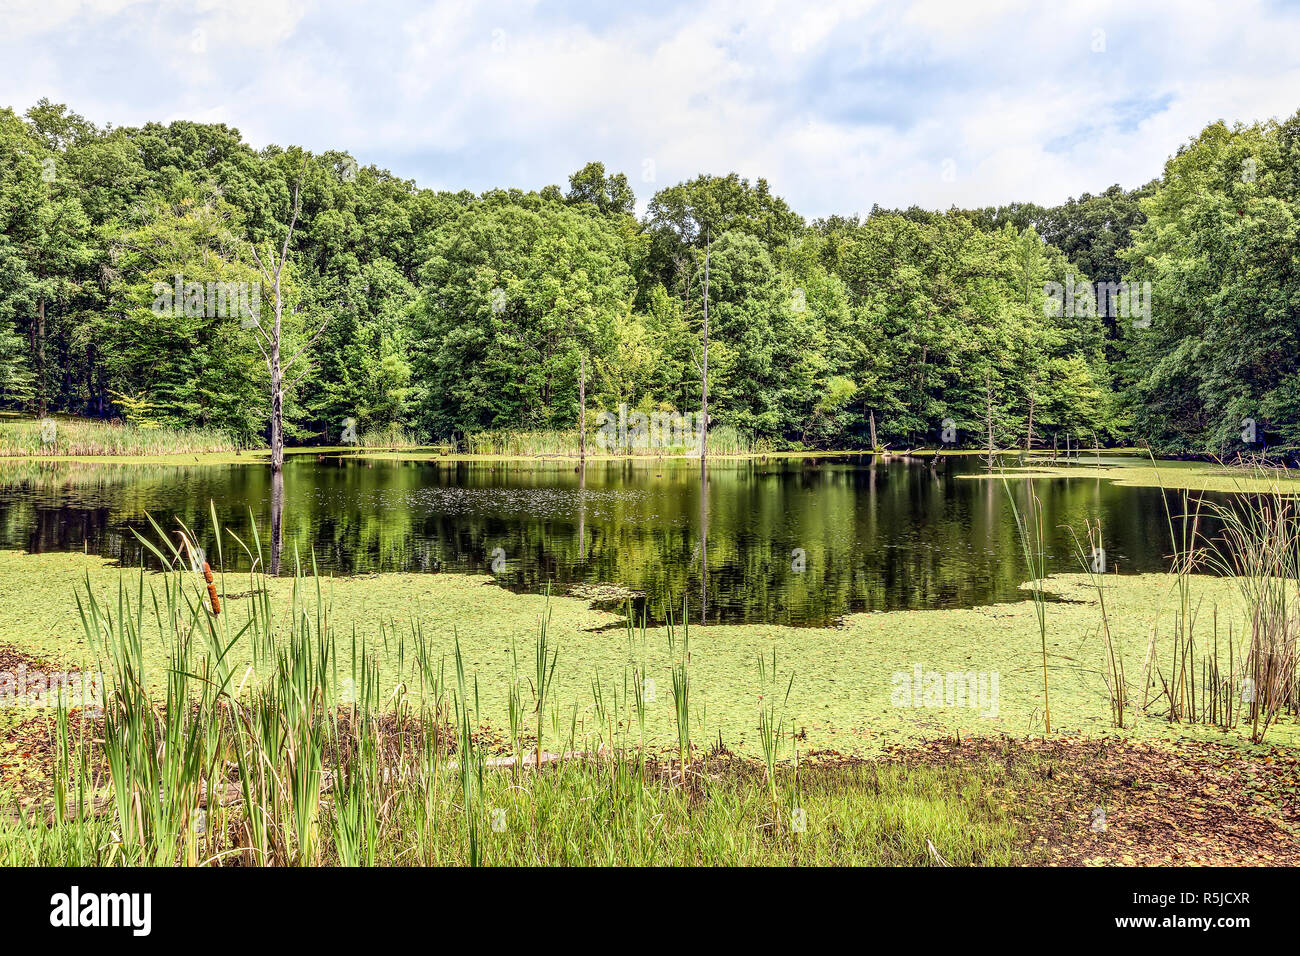 Aspen Pond, near North Vernon, Indiana, is surrounded by summer's greenery. Stock Photo